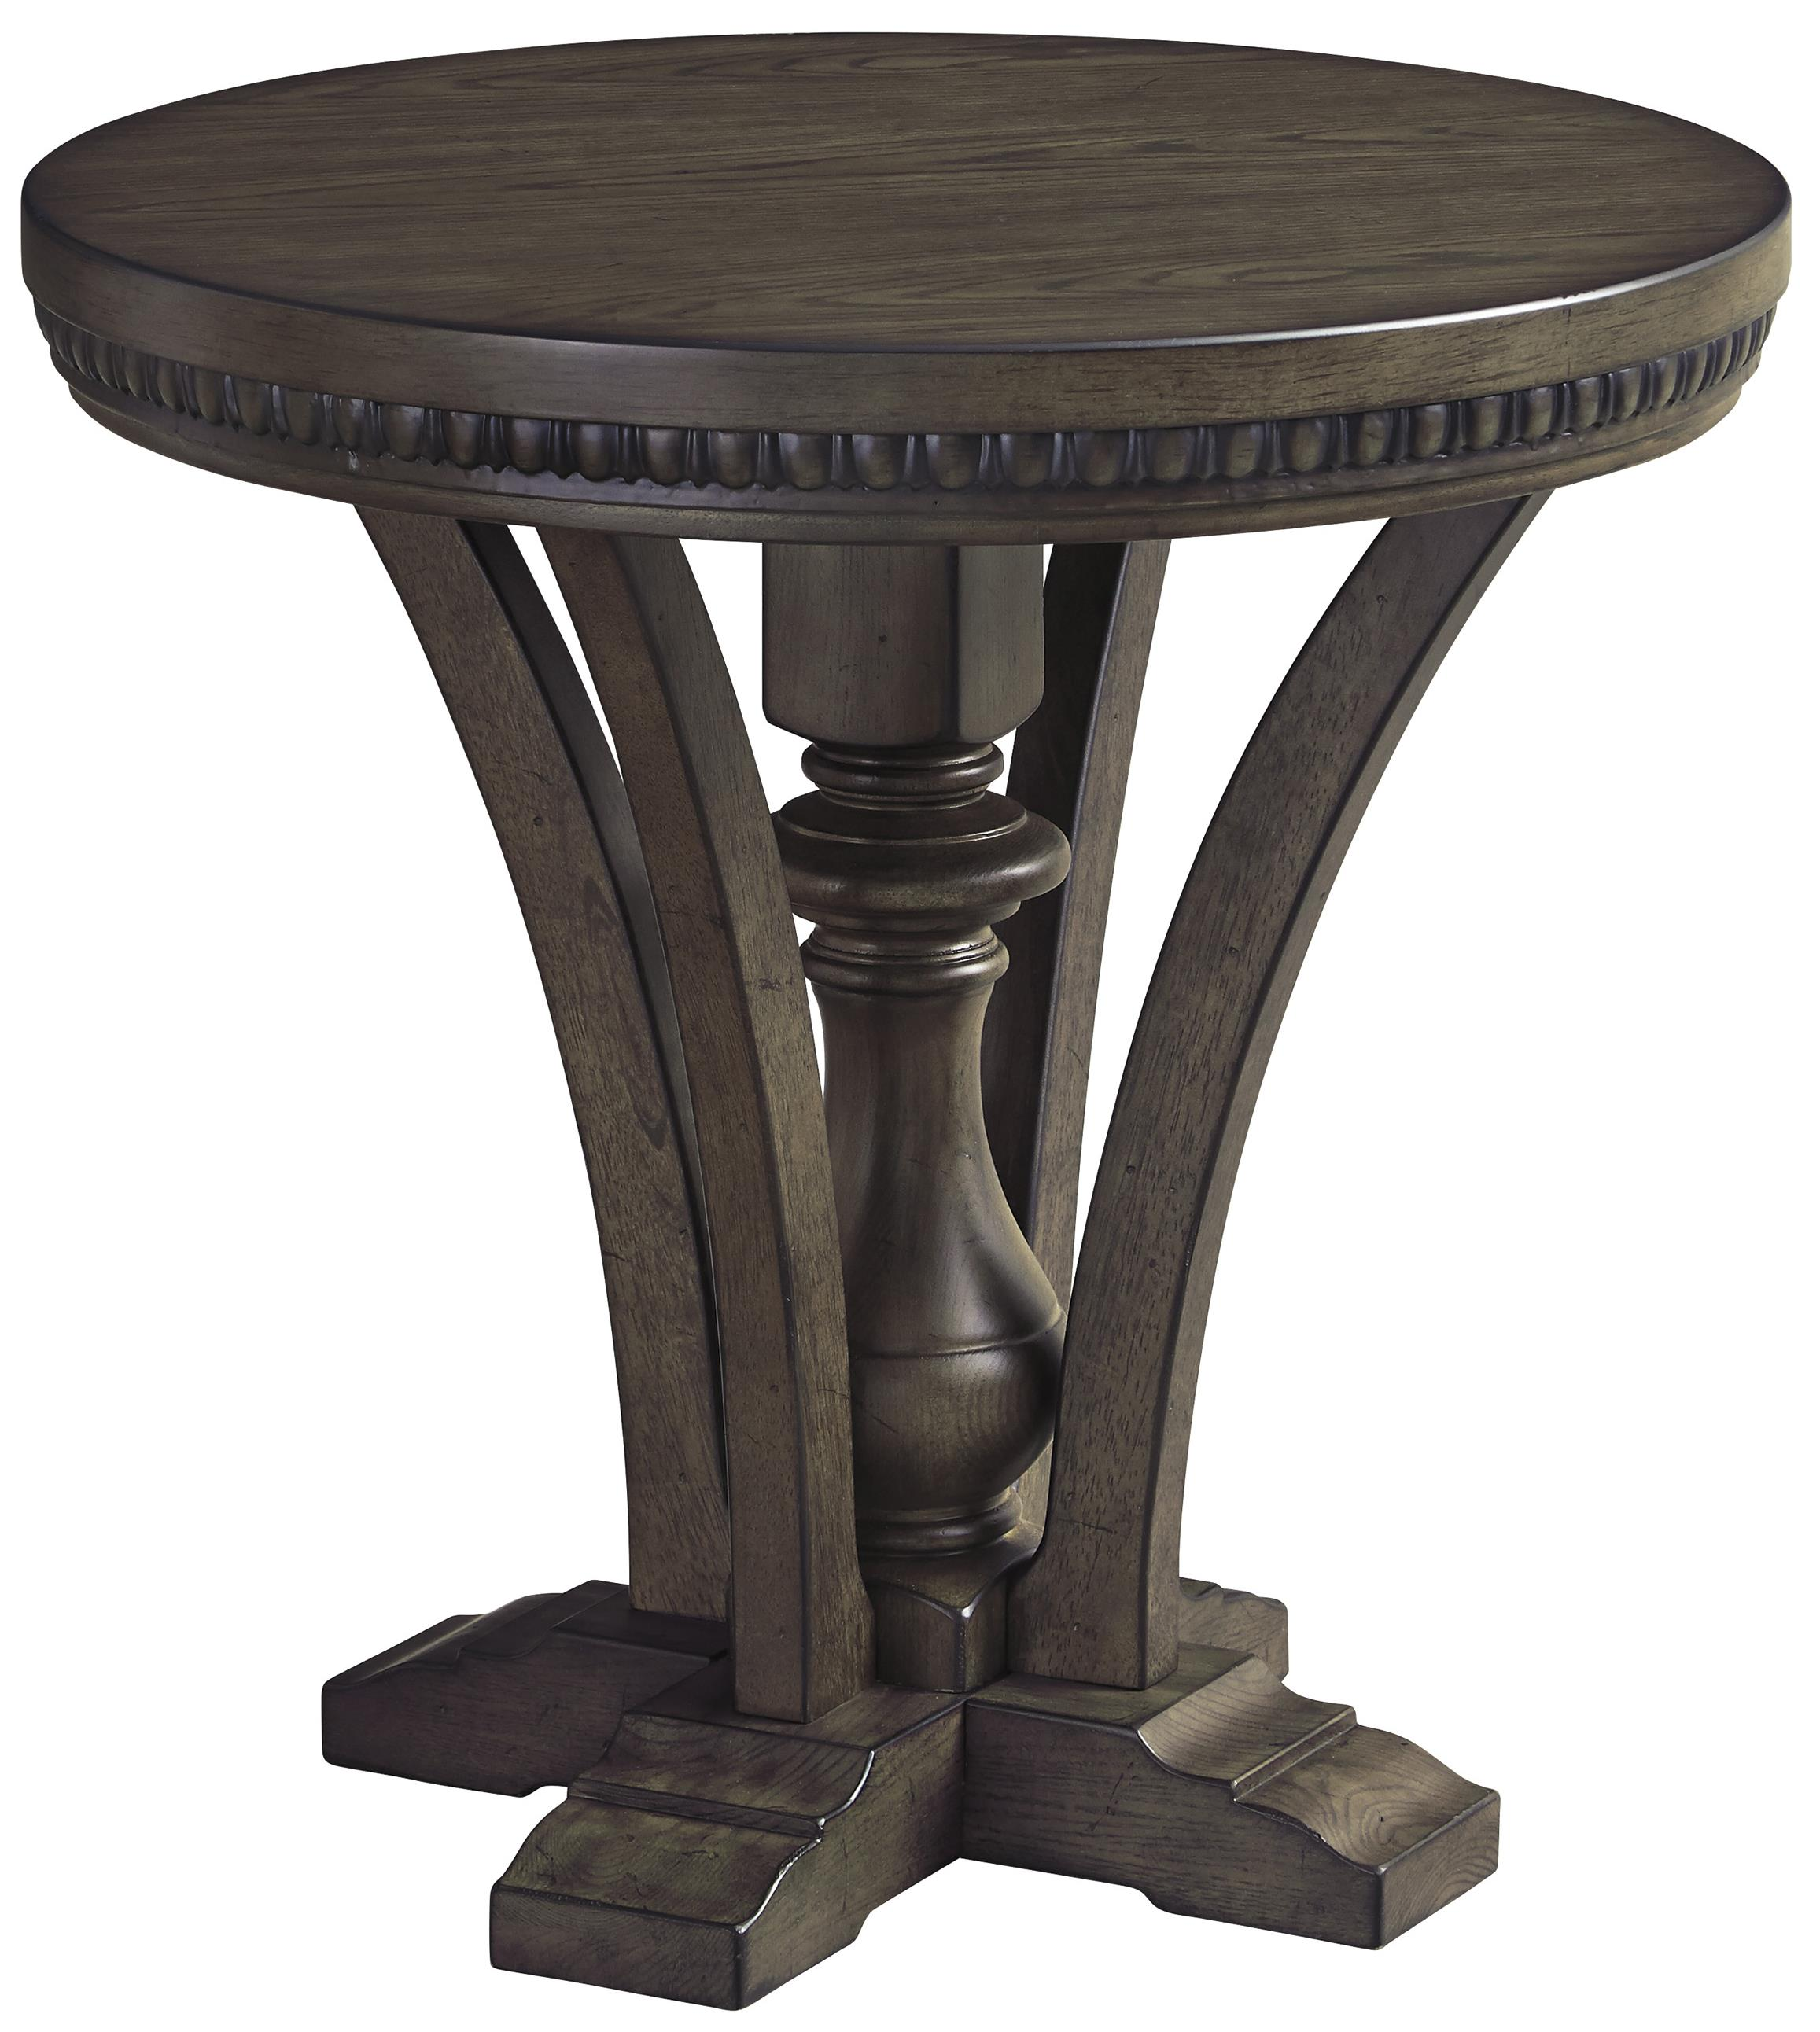 Signature Design by Ashley Larrenton Round End Table - Item Number: T890-6